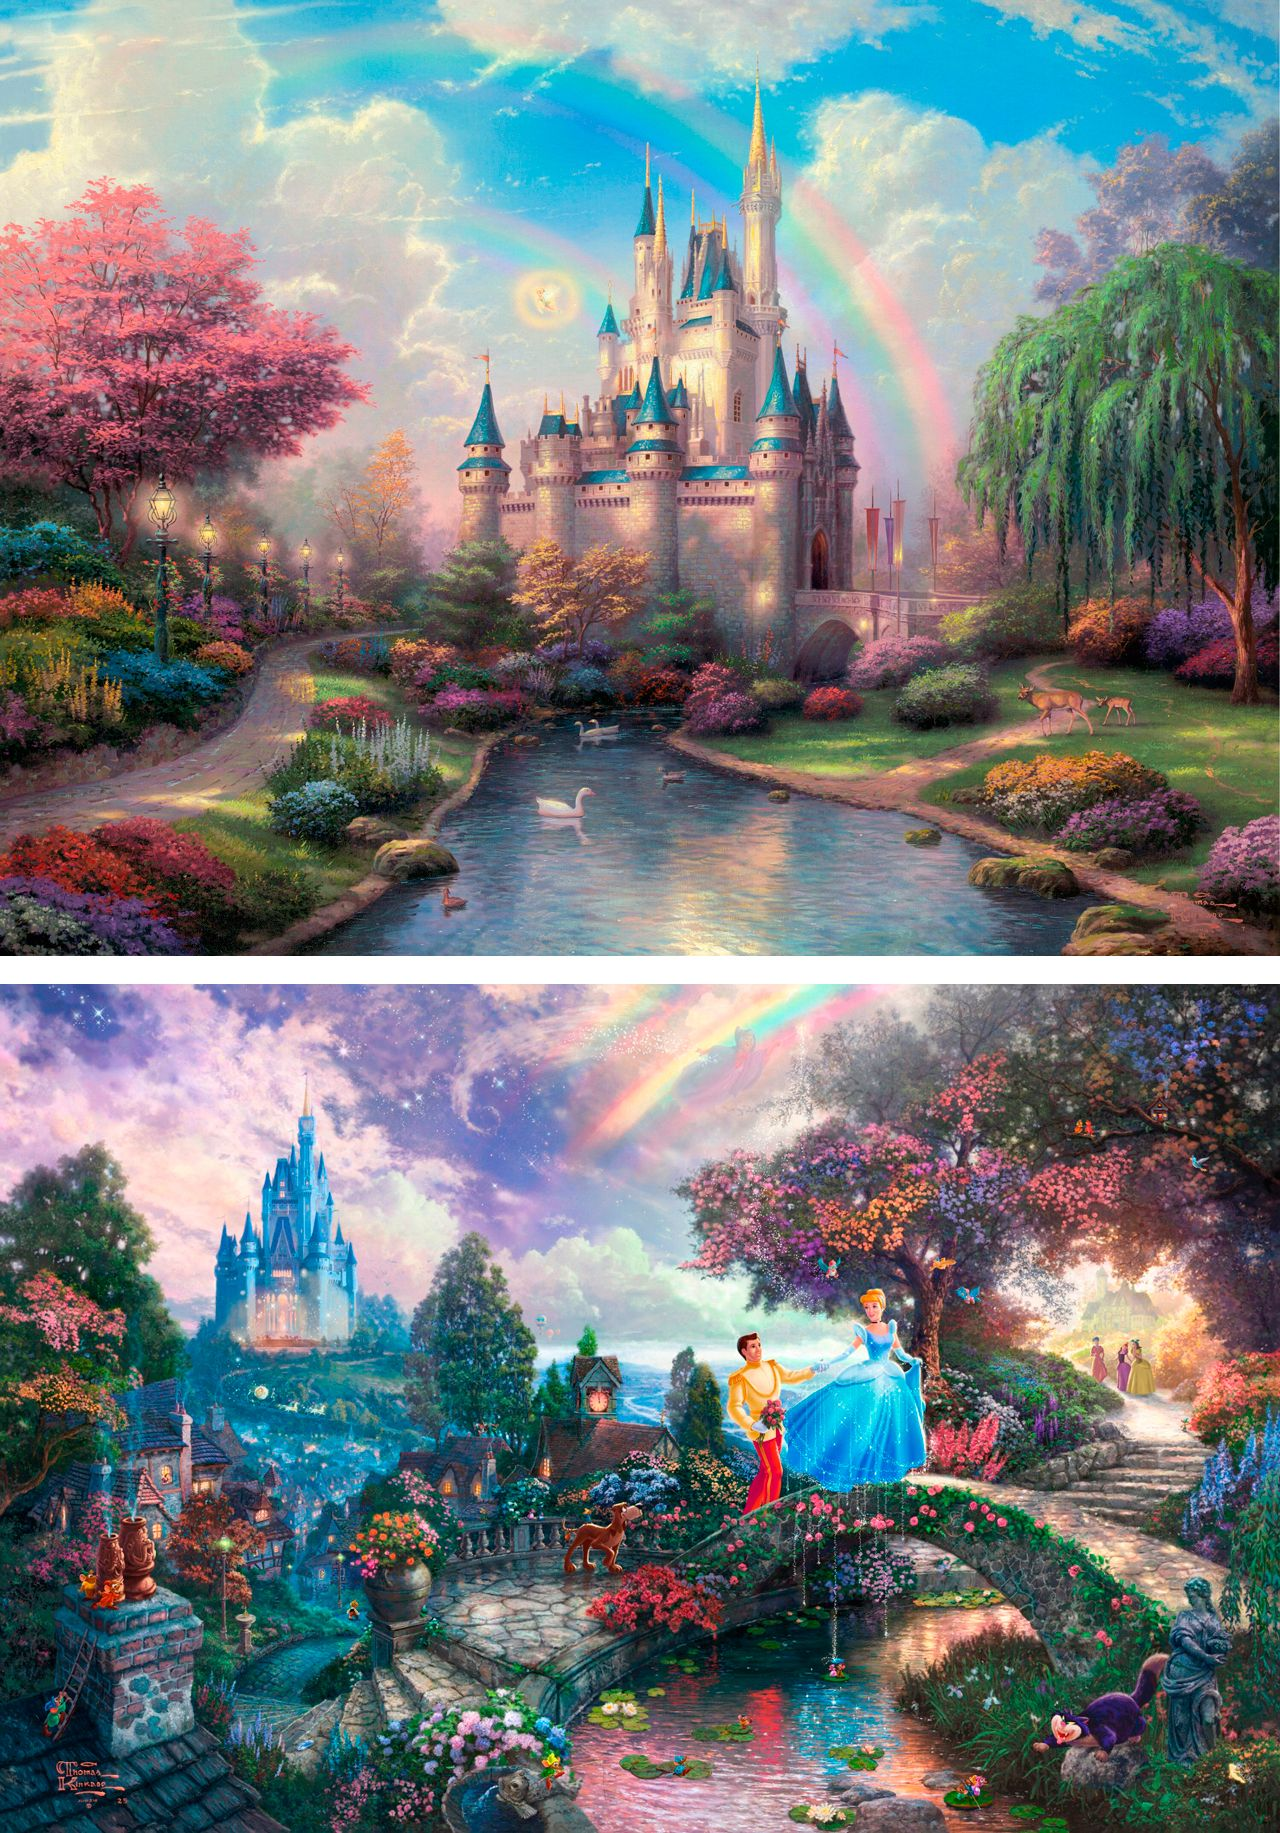 thomas kinkade disney disney pinterest bilder zeichnungen und m rchen. Black Bedroom Furniture Sets. Home Design Ideas